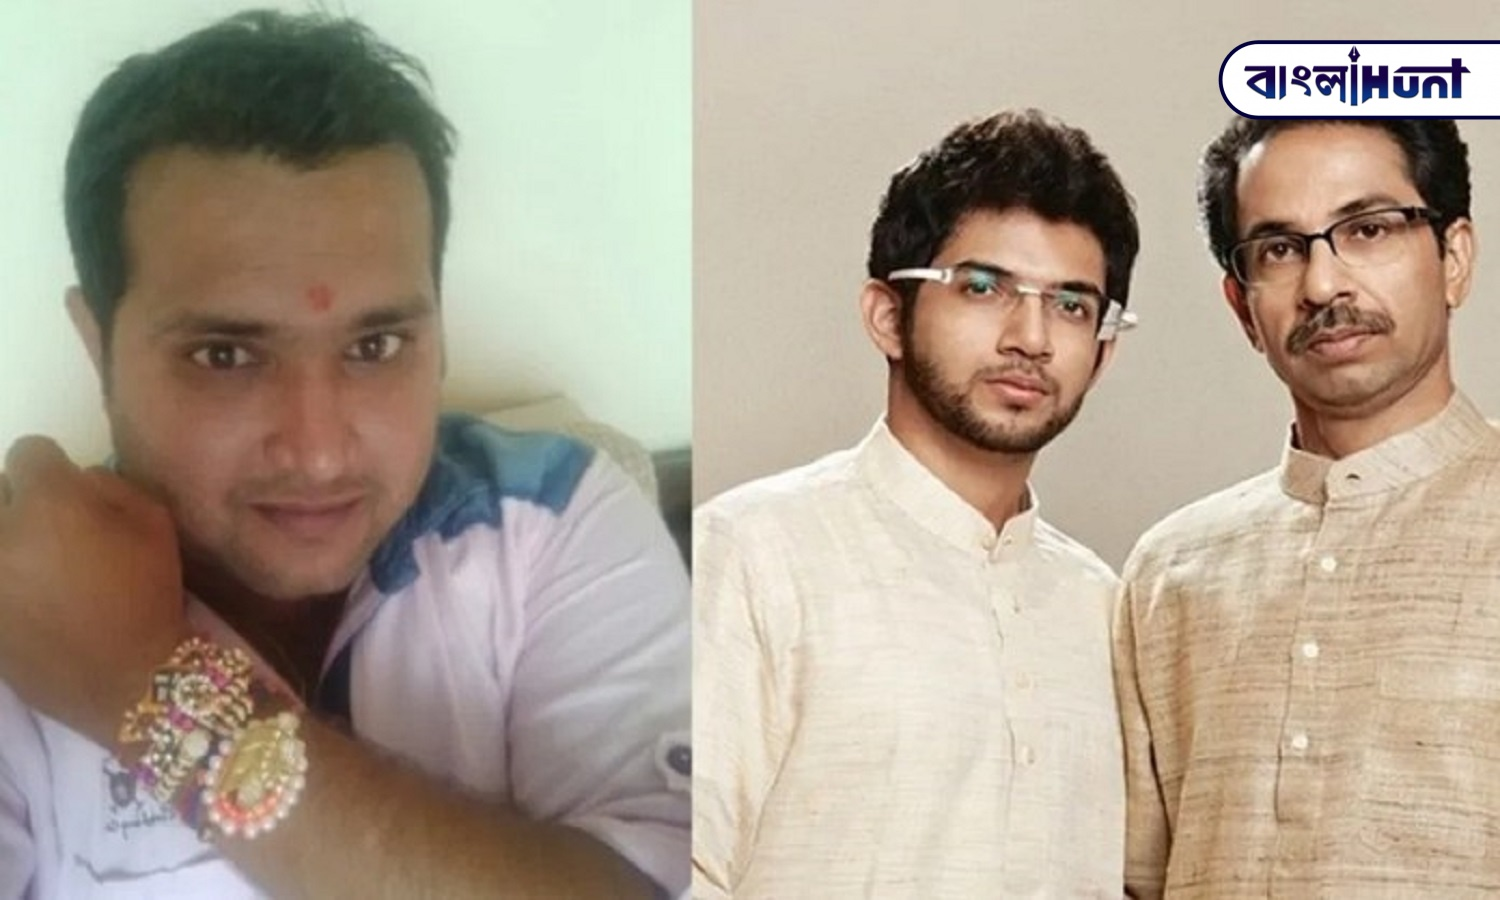 sameet thakkar arrested for mocking Uddhav Thackeray's ministers, gets bail after 21 days